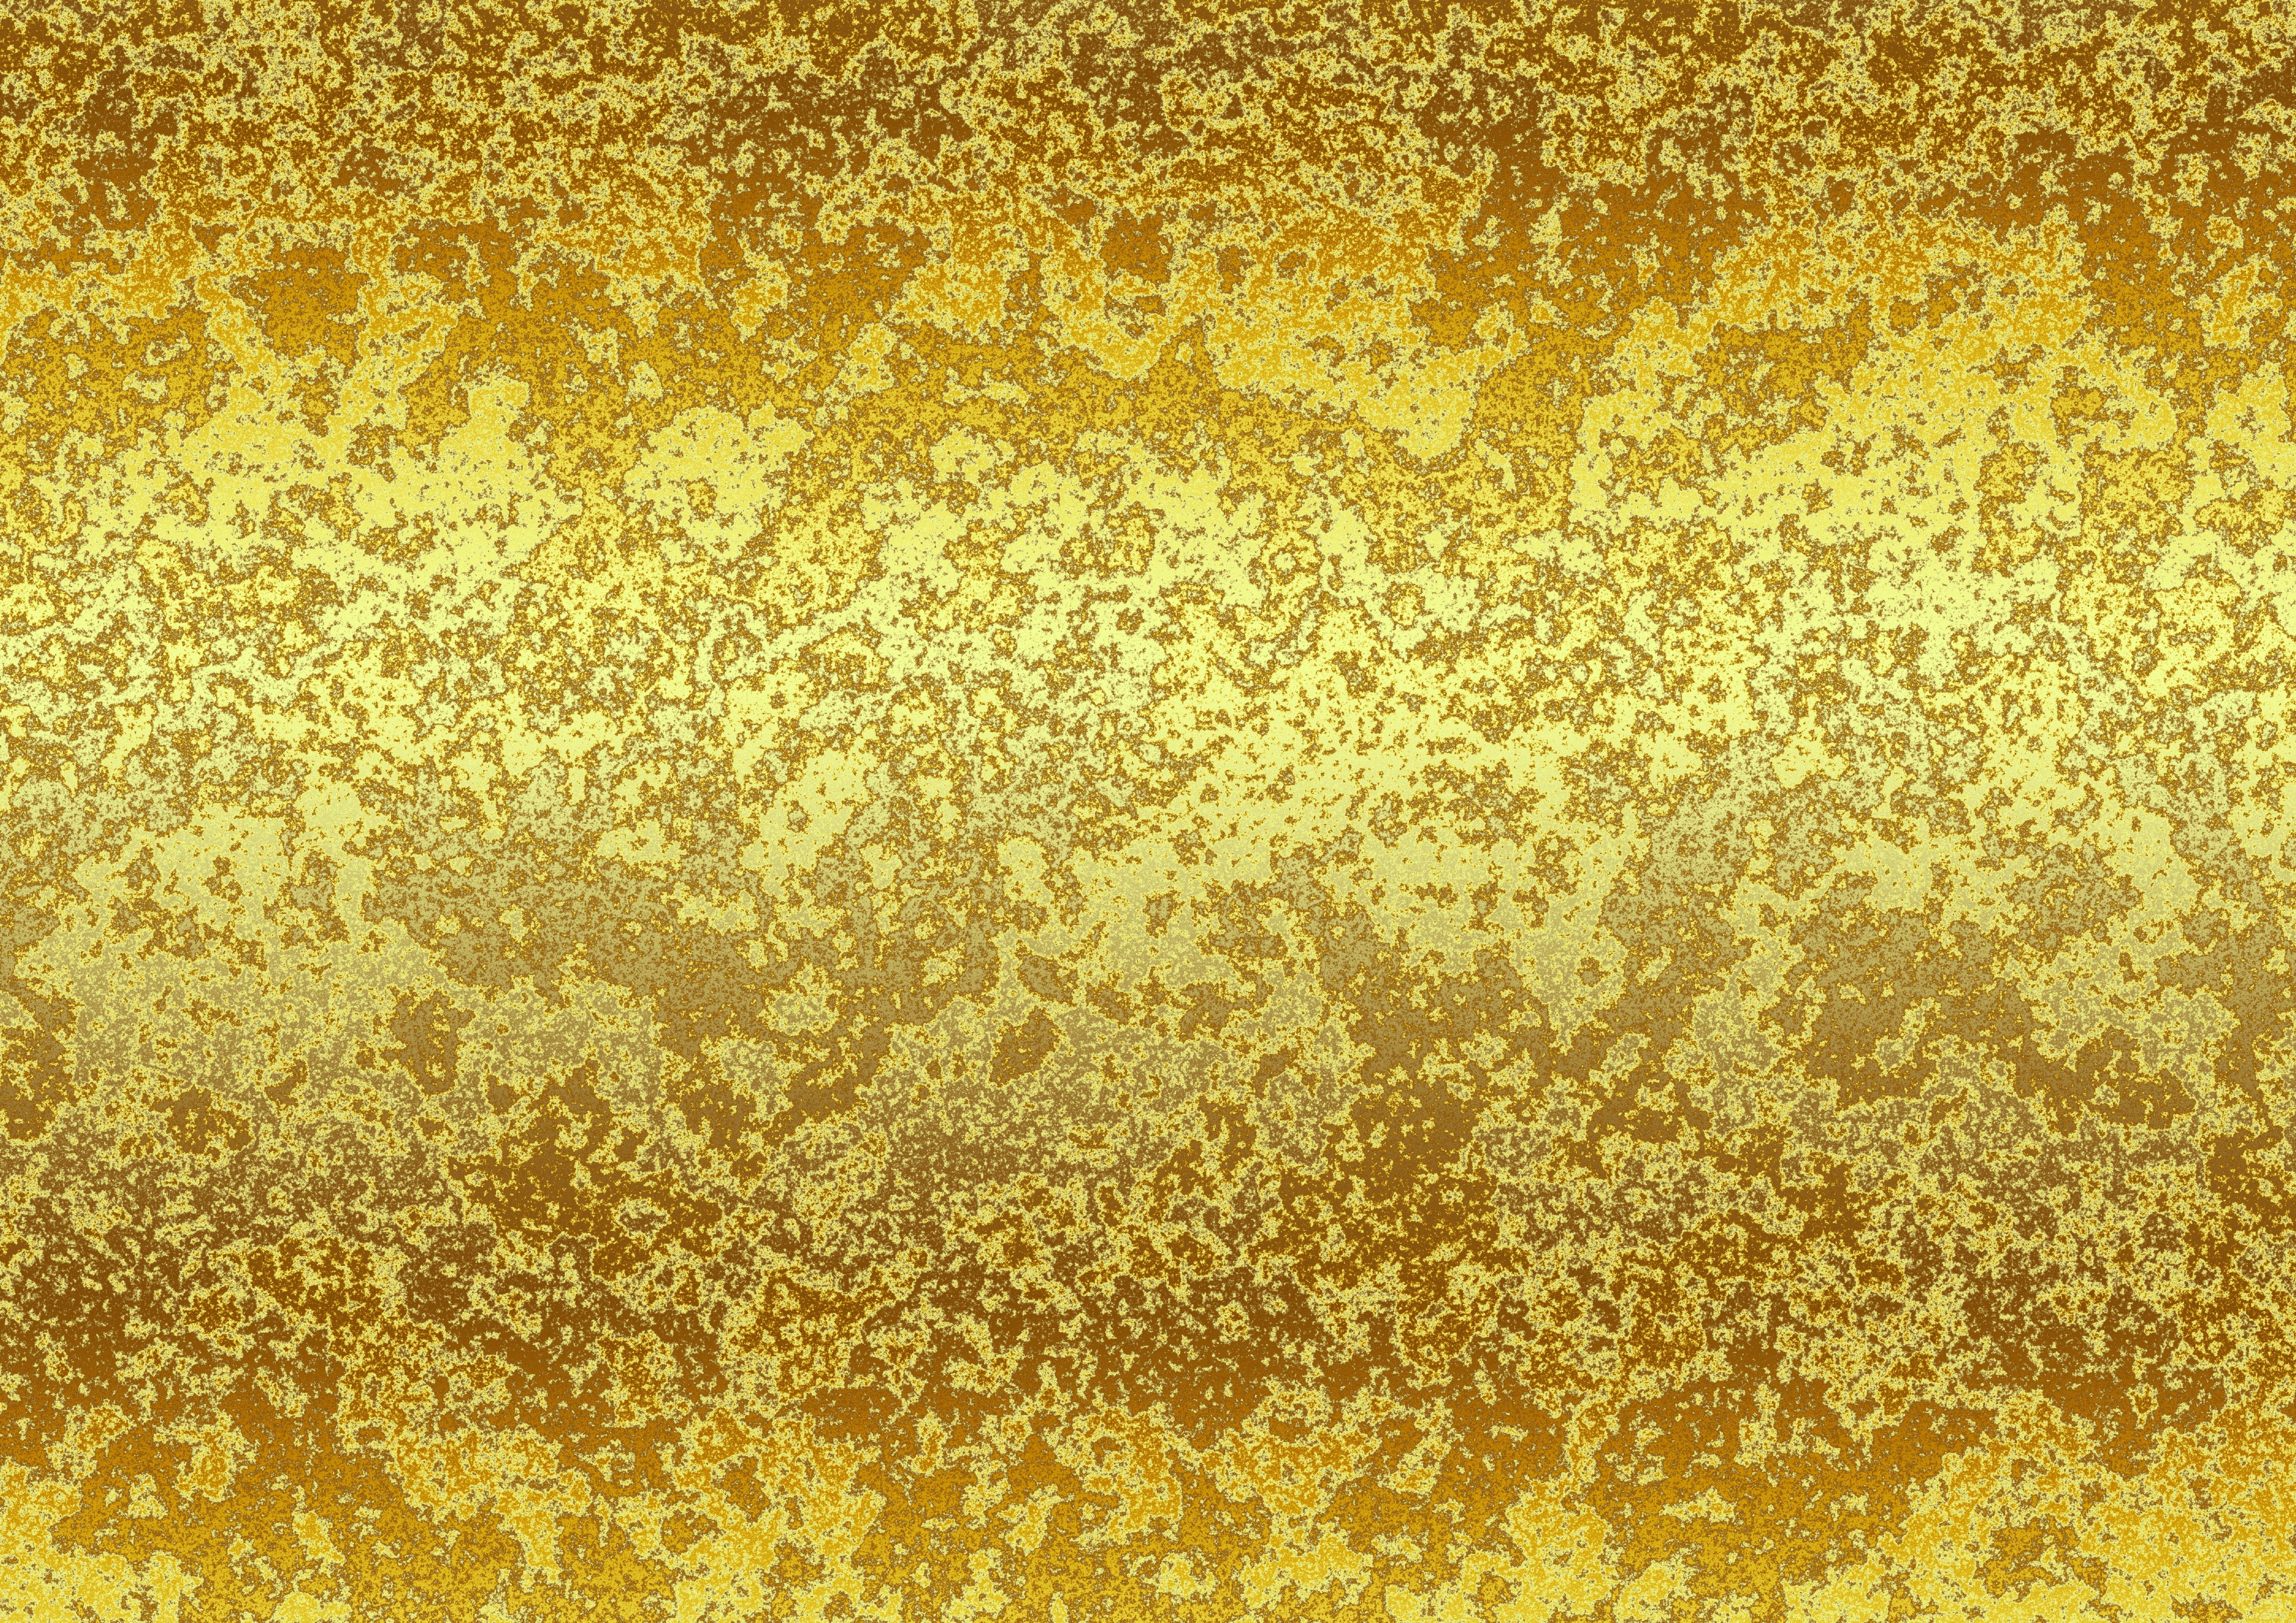 Gold texture photo